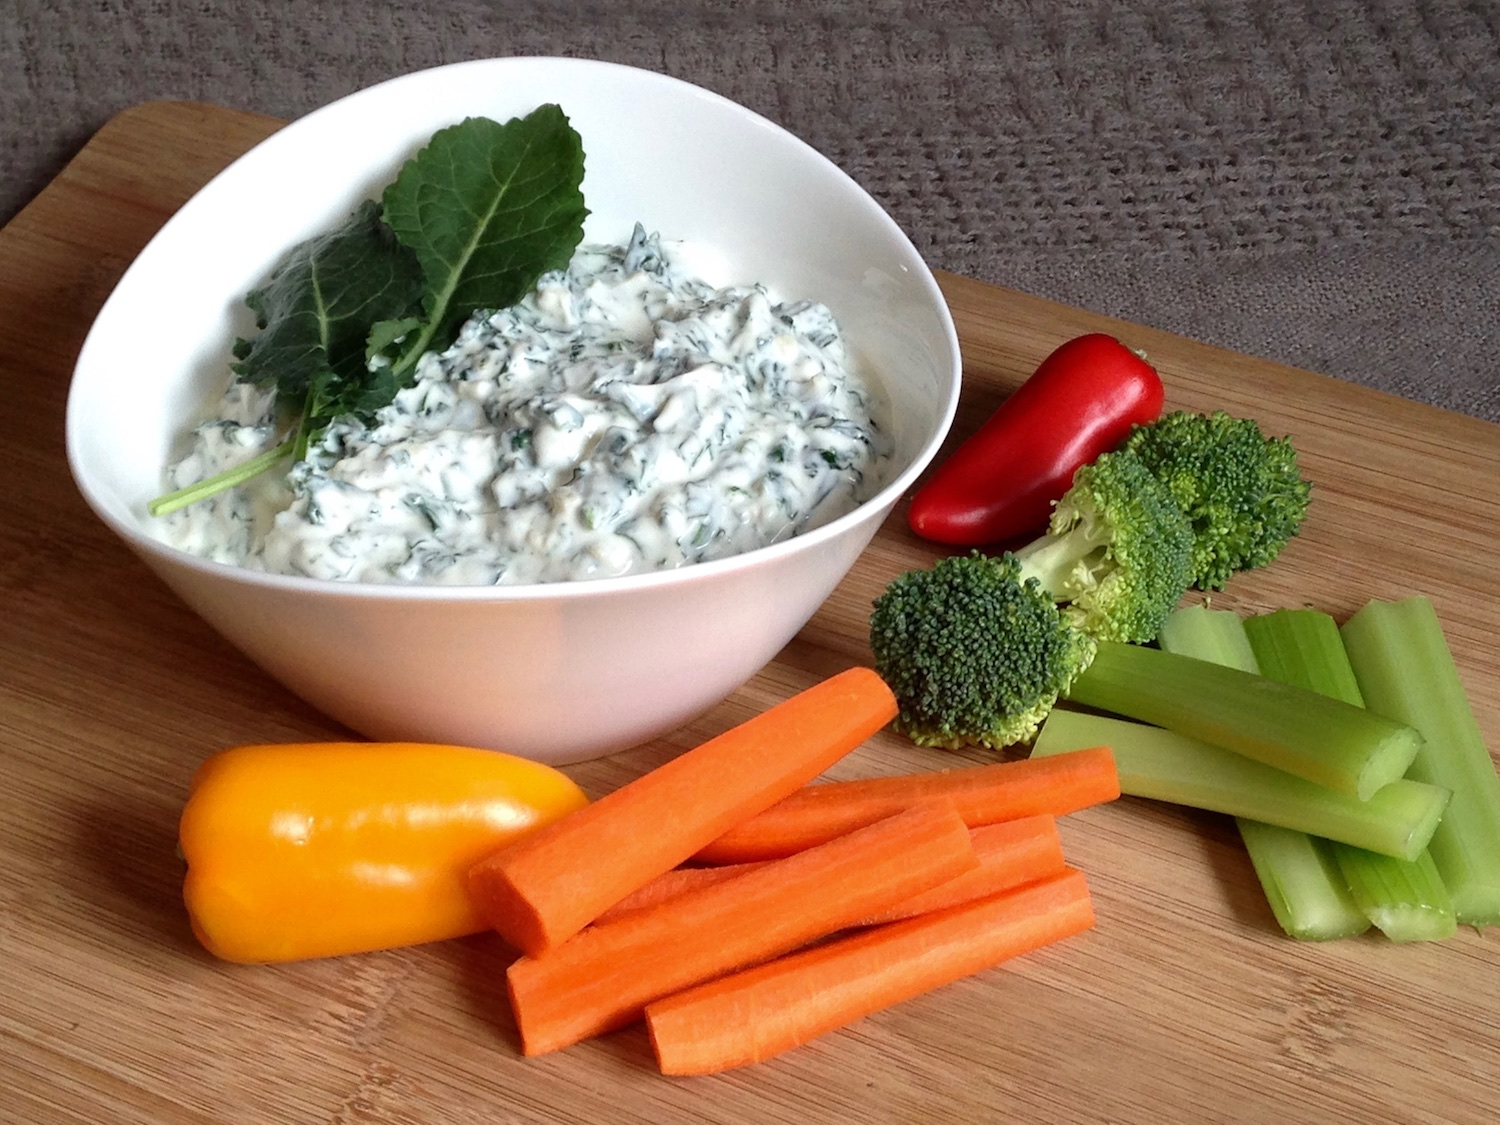 Greek yogurt and kale dip